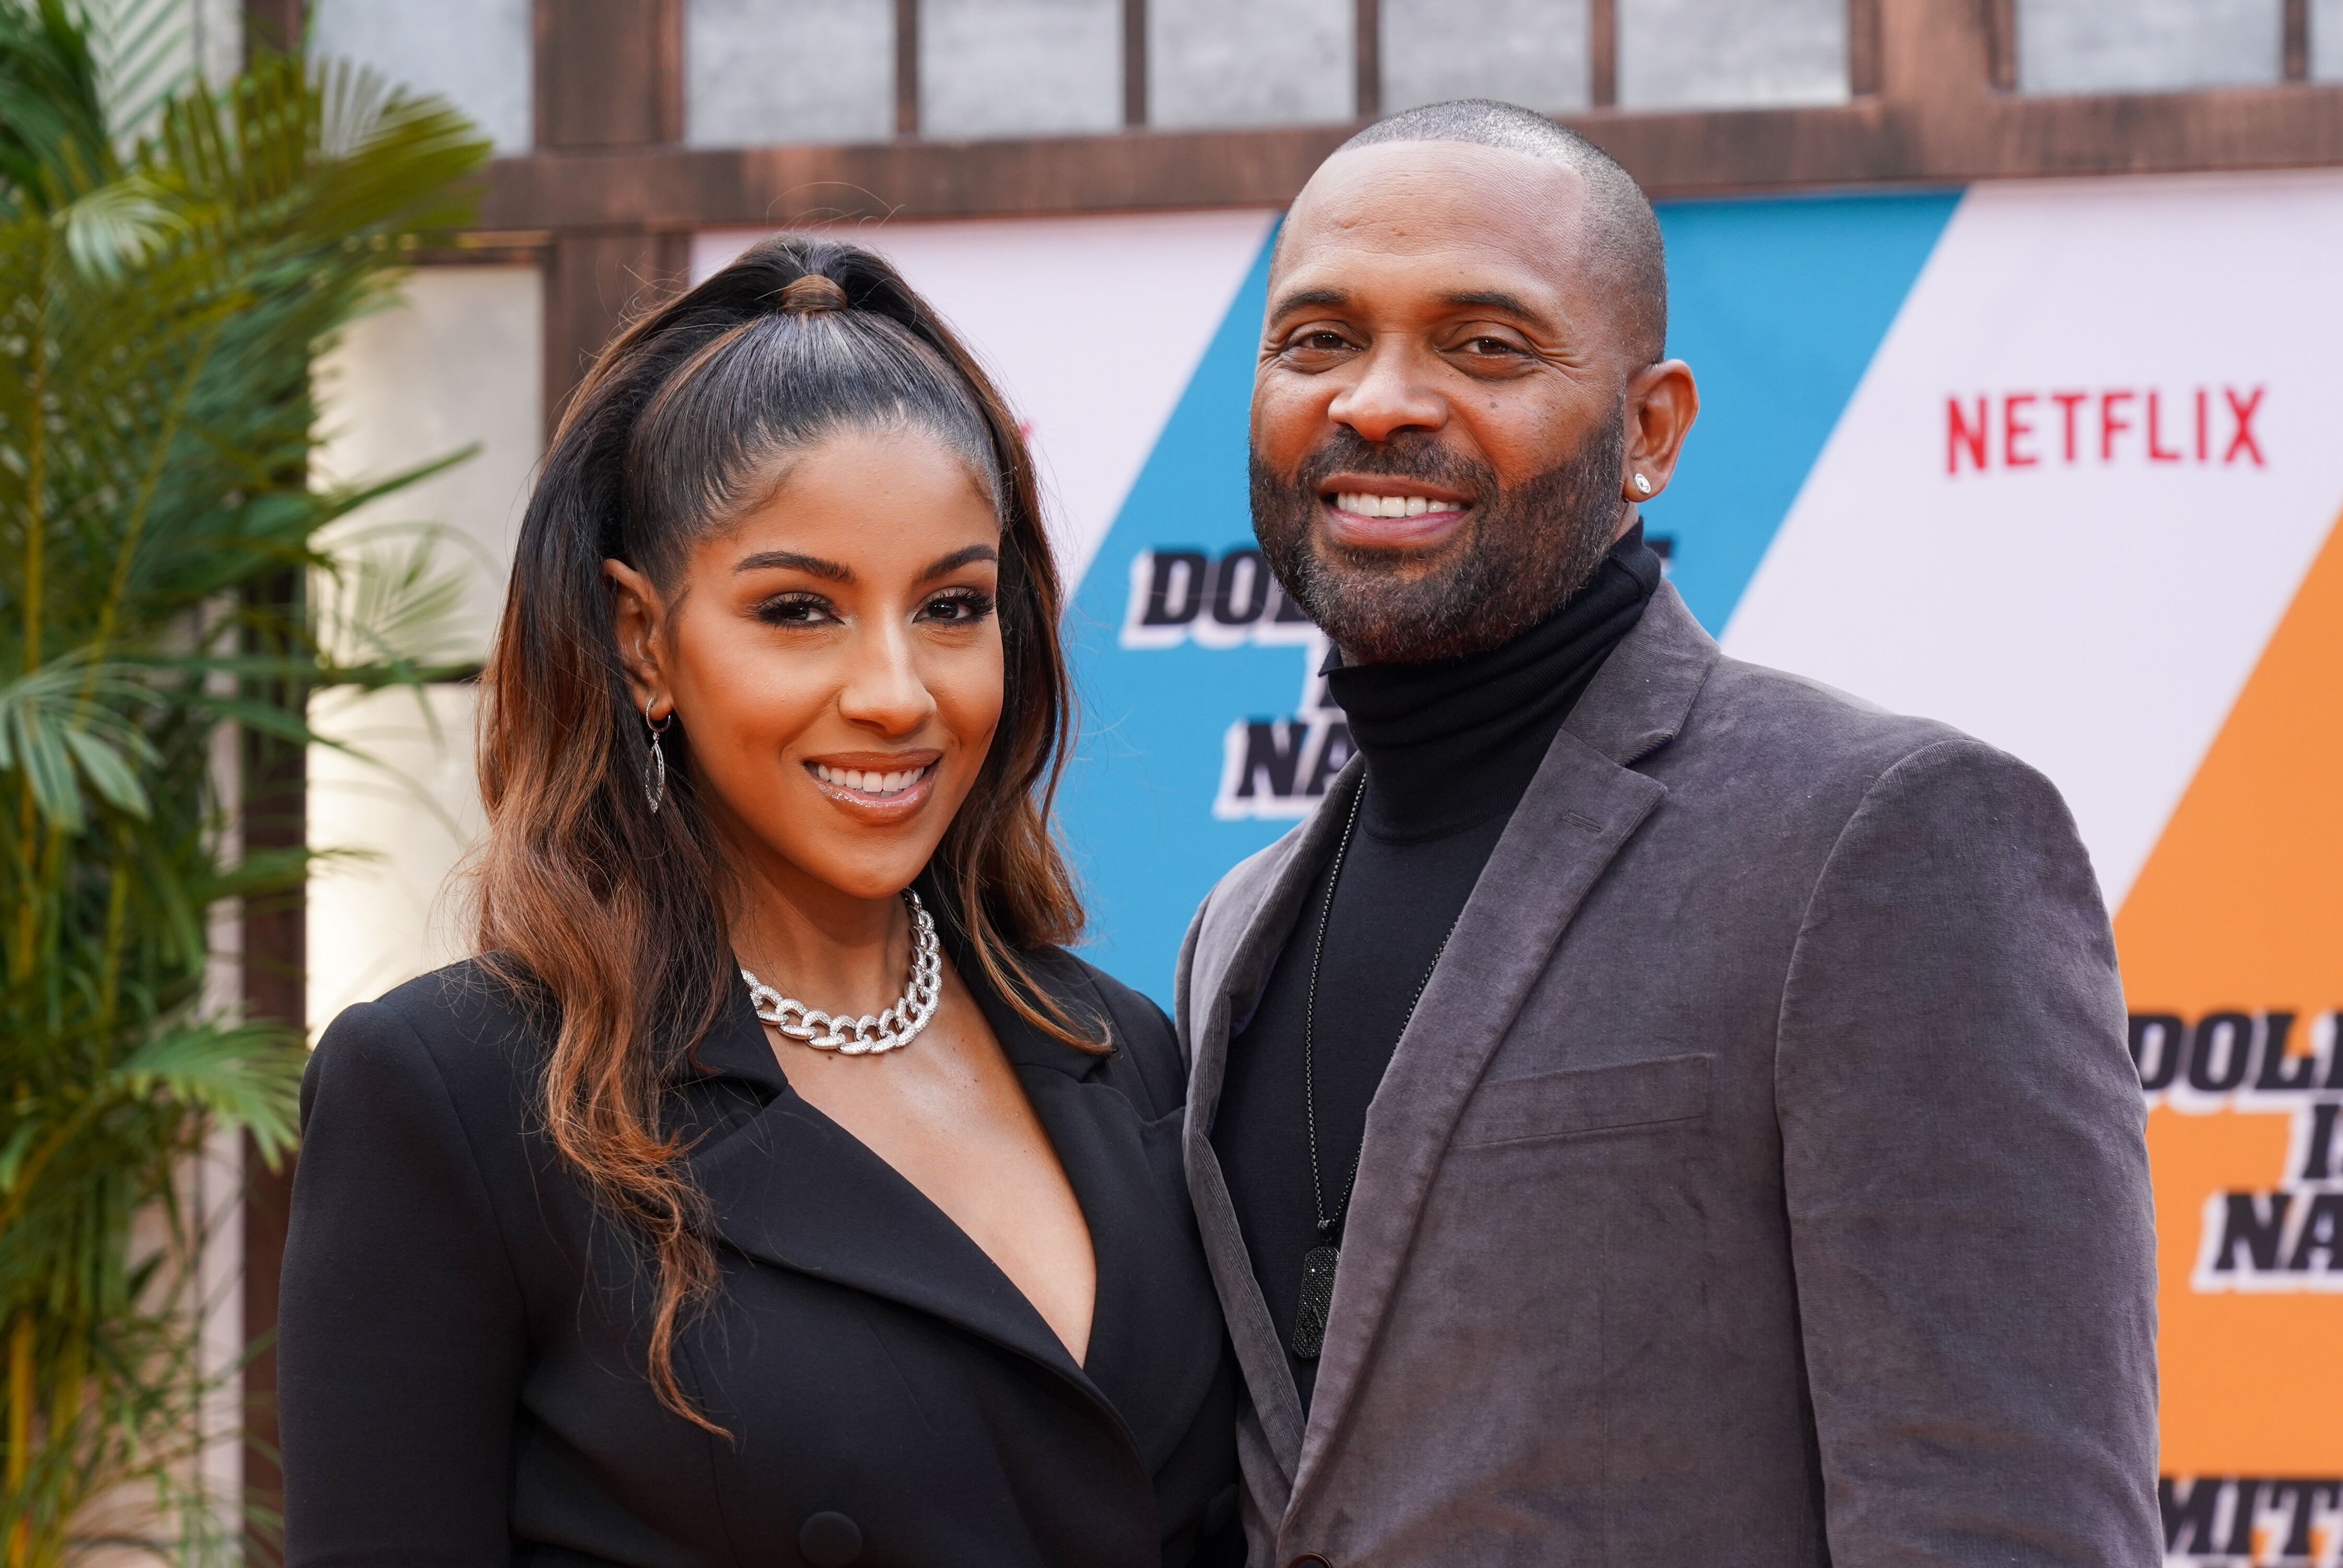 """Mike Epps and Kyra Robinson attend the LA premiere of Netflix's """"Dolemite Is My Name"""" on September 28, 2019.   Source: Getty Images"""